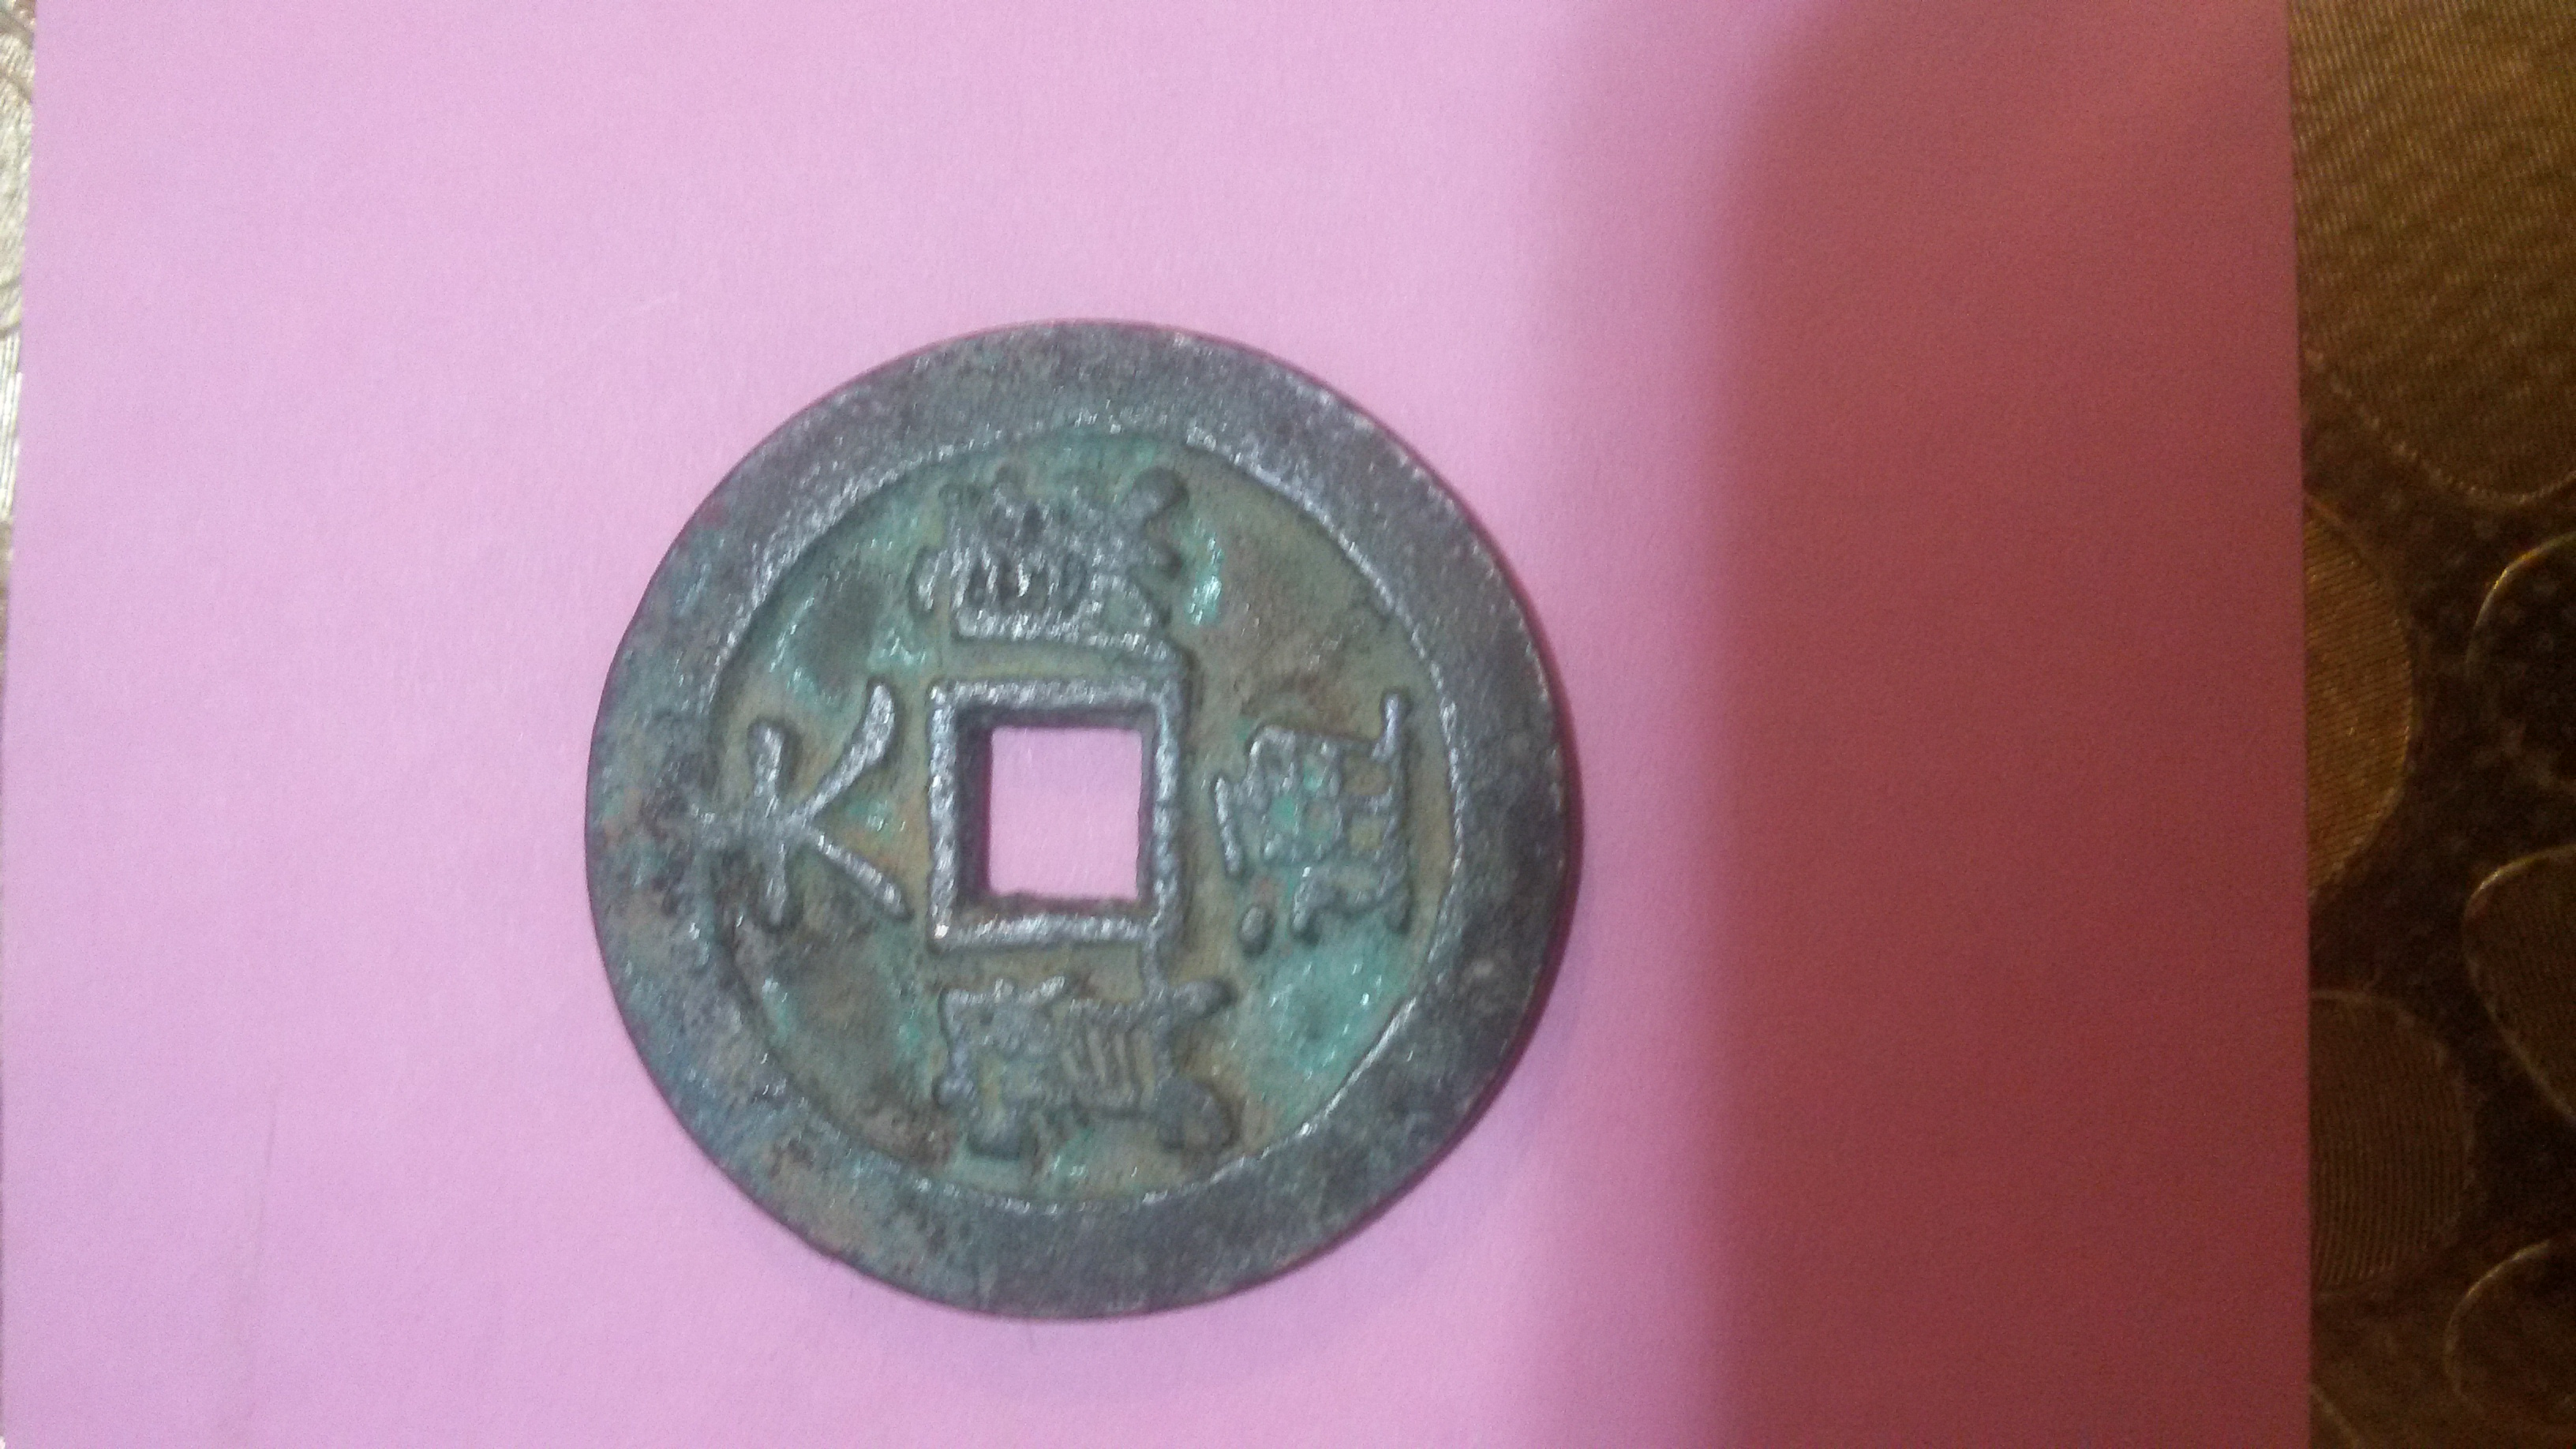 What is this coin